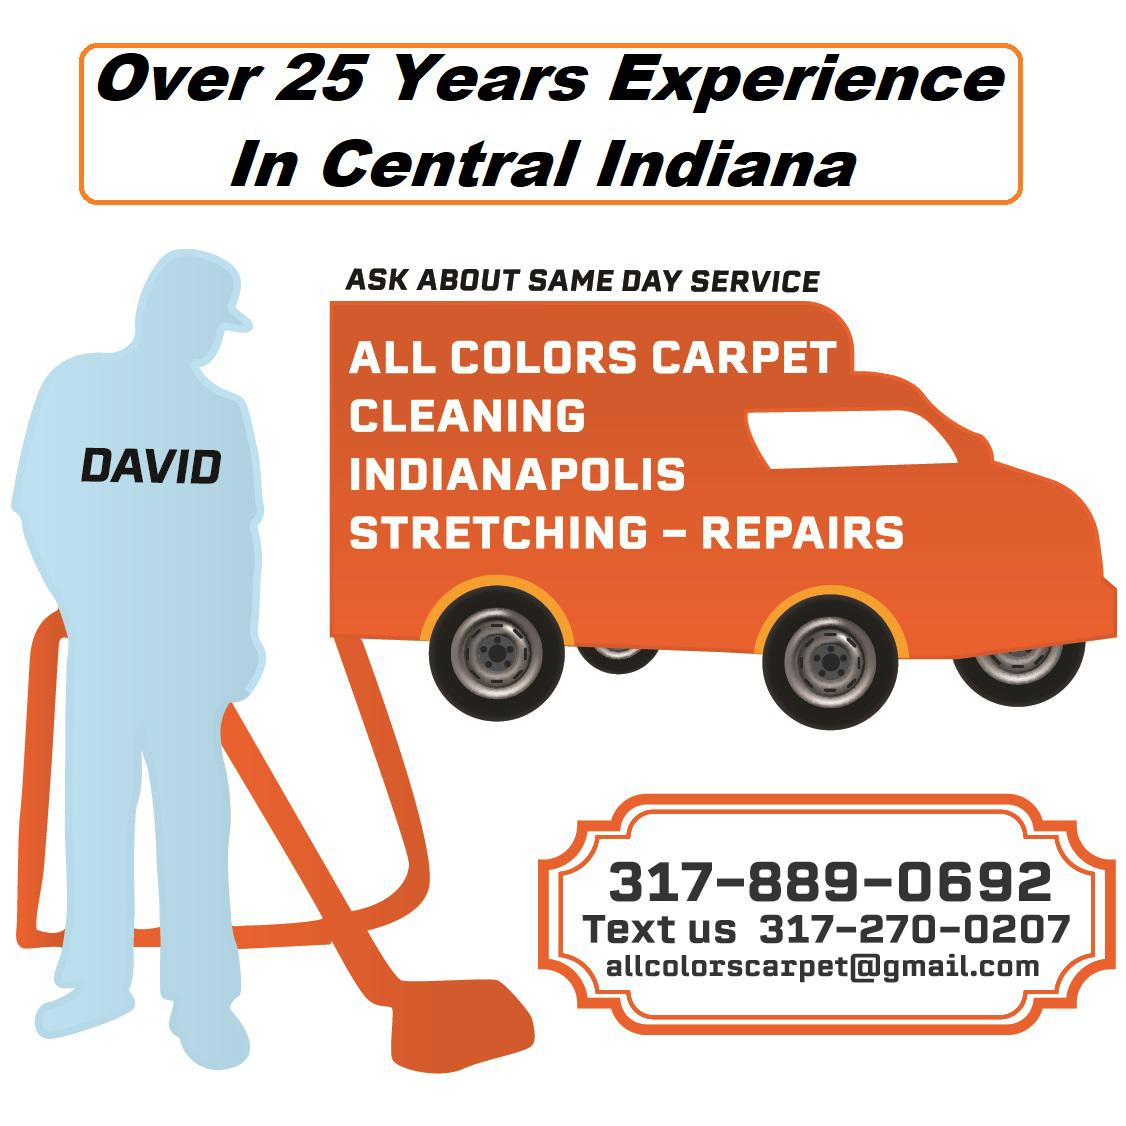 All Colors Carpet Cleaning Indianapolis Stretching-Repairs Logo